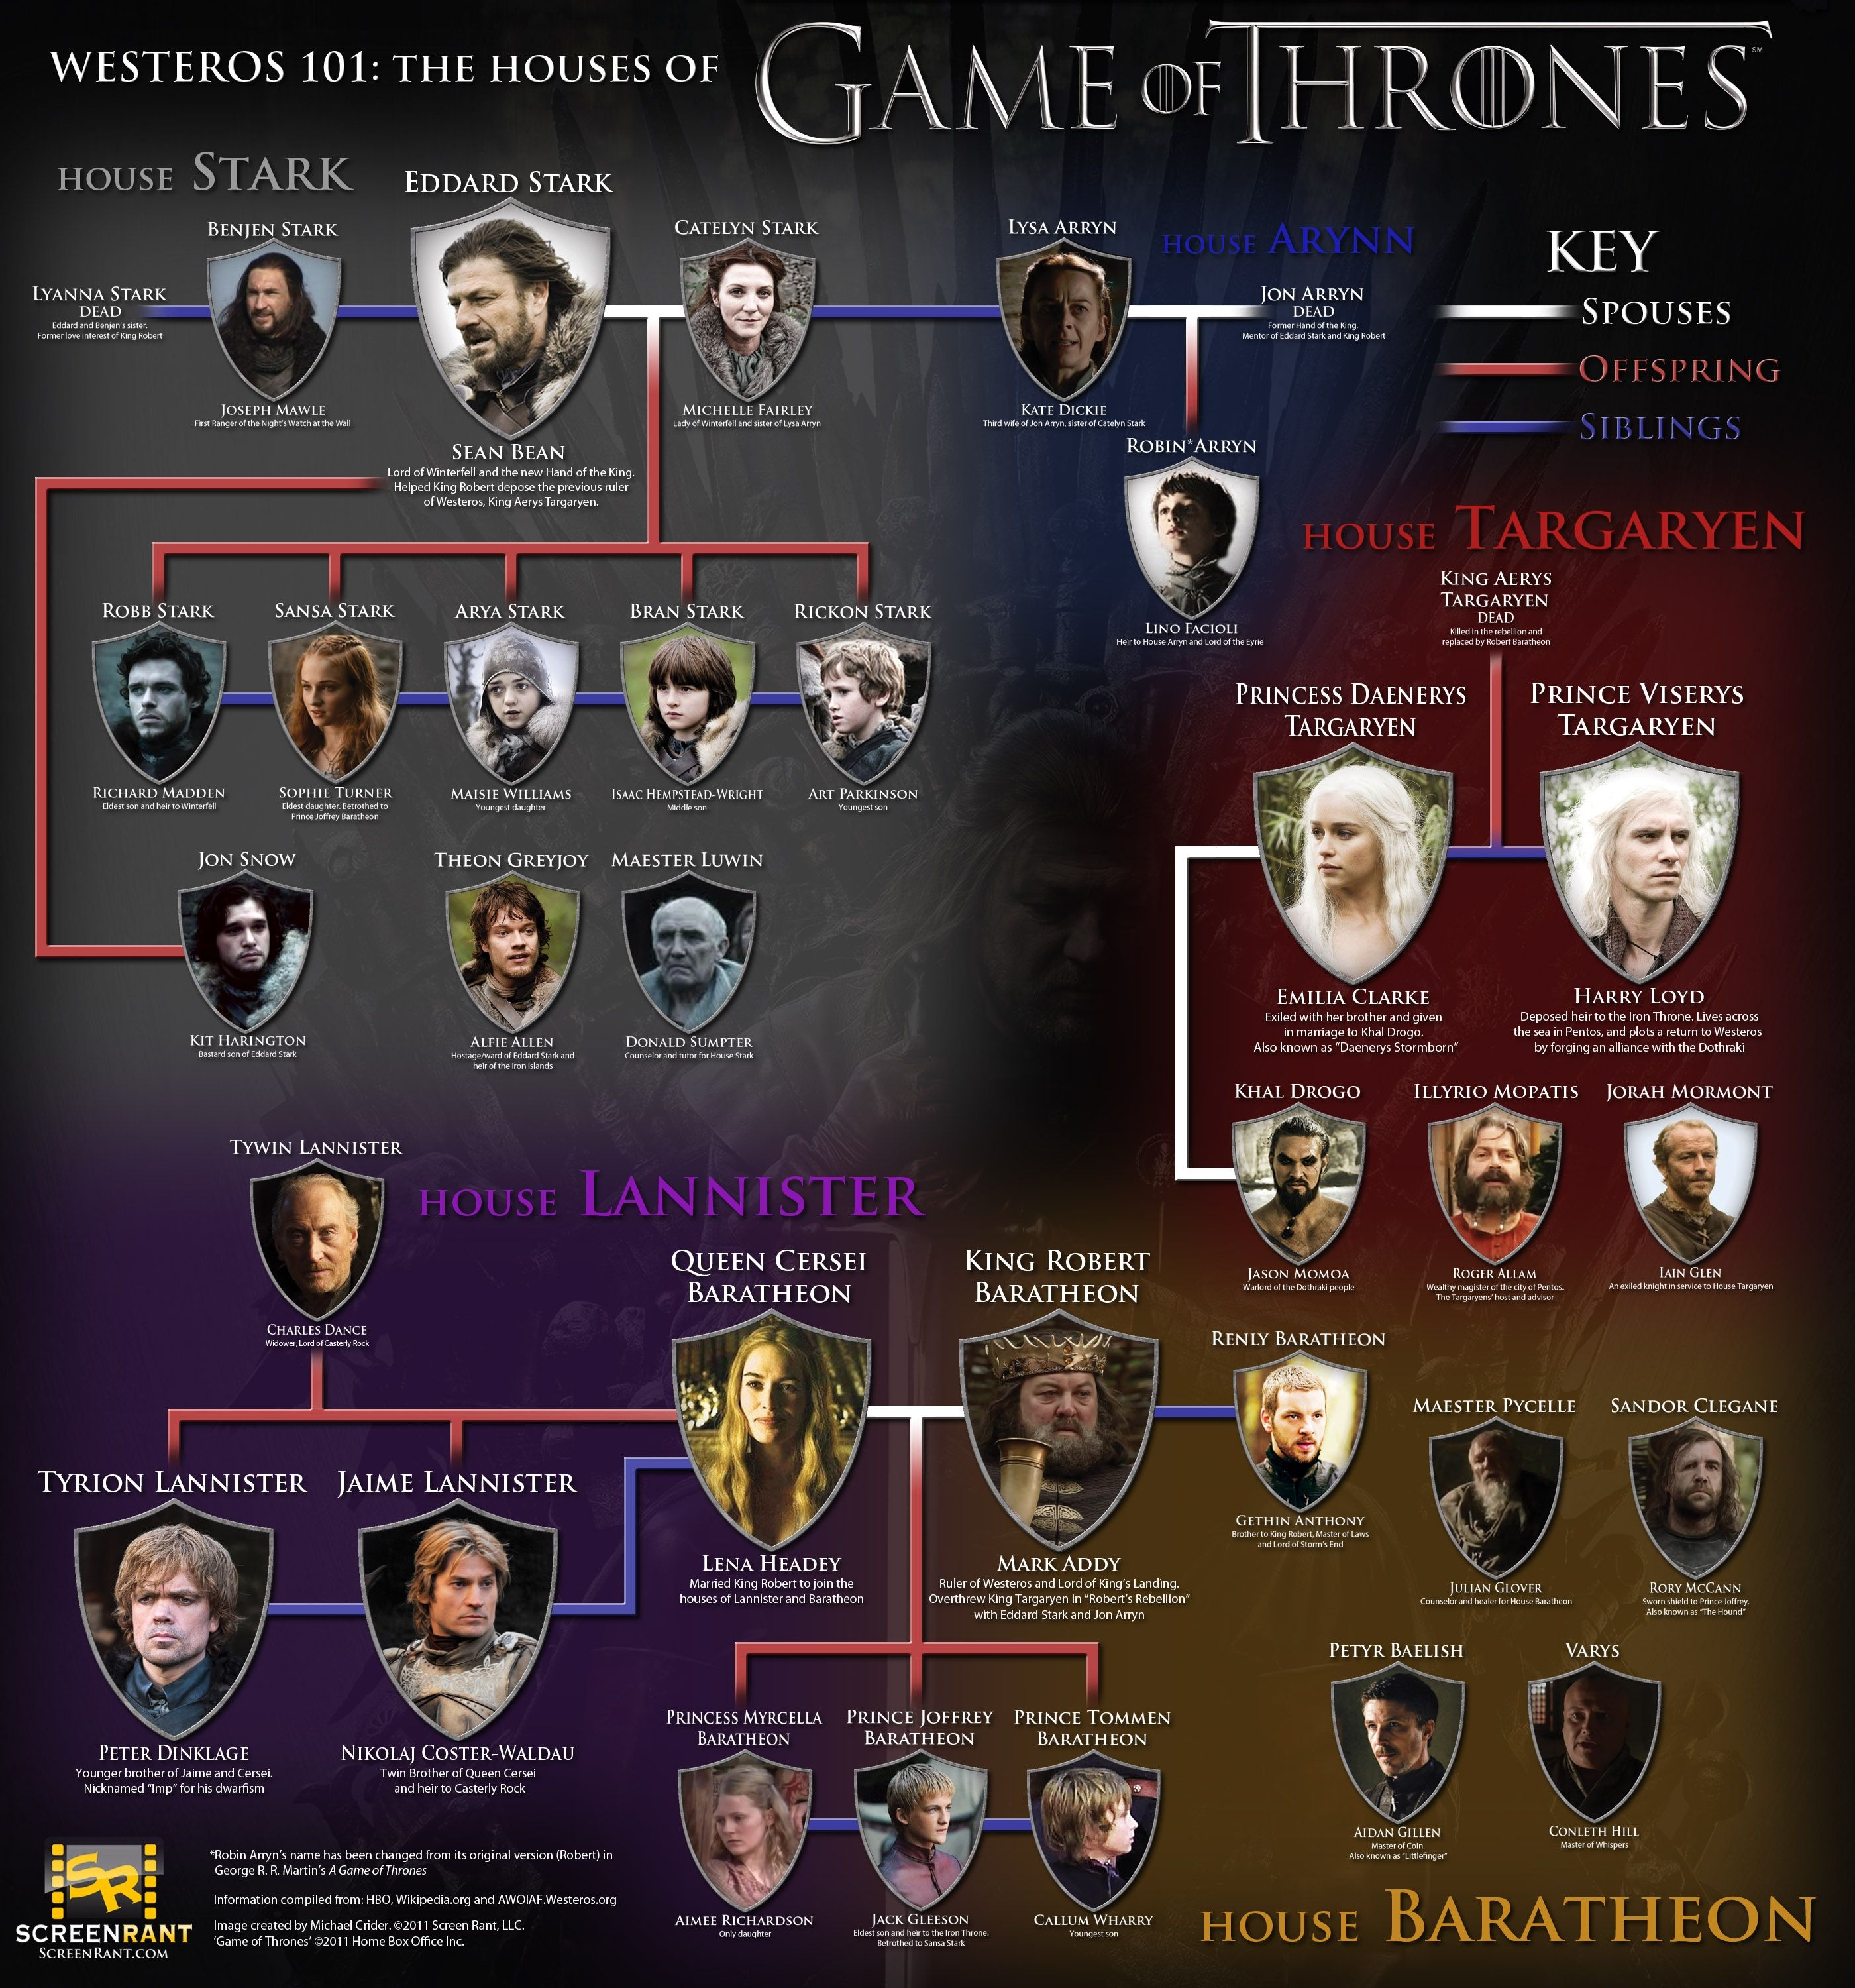 game of thrones family tree end of season 3